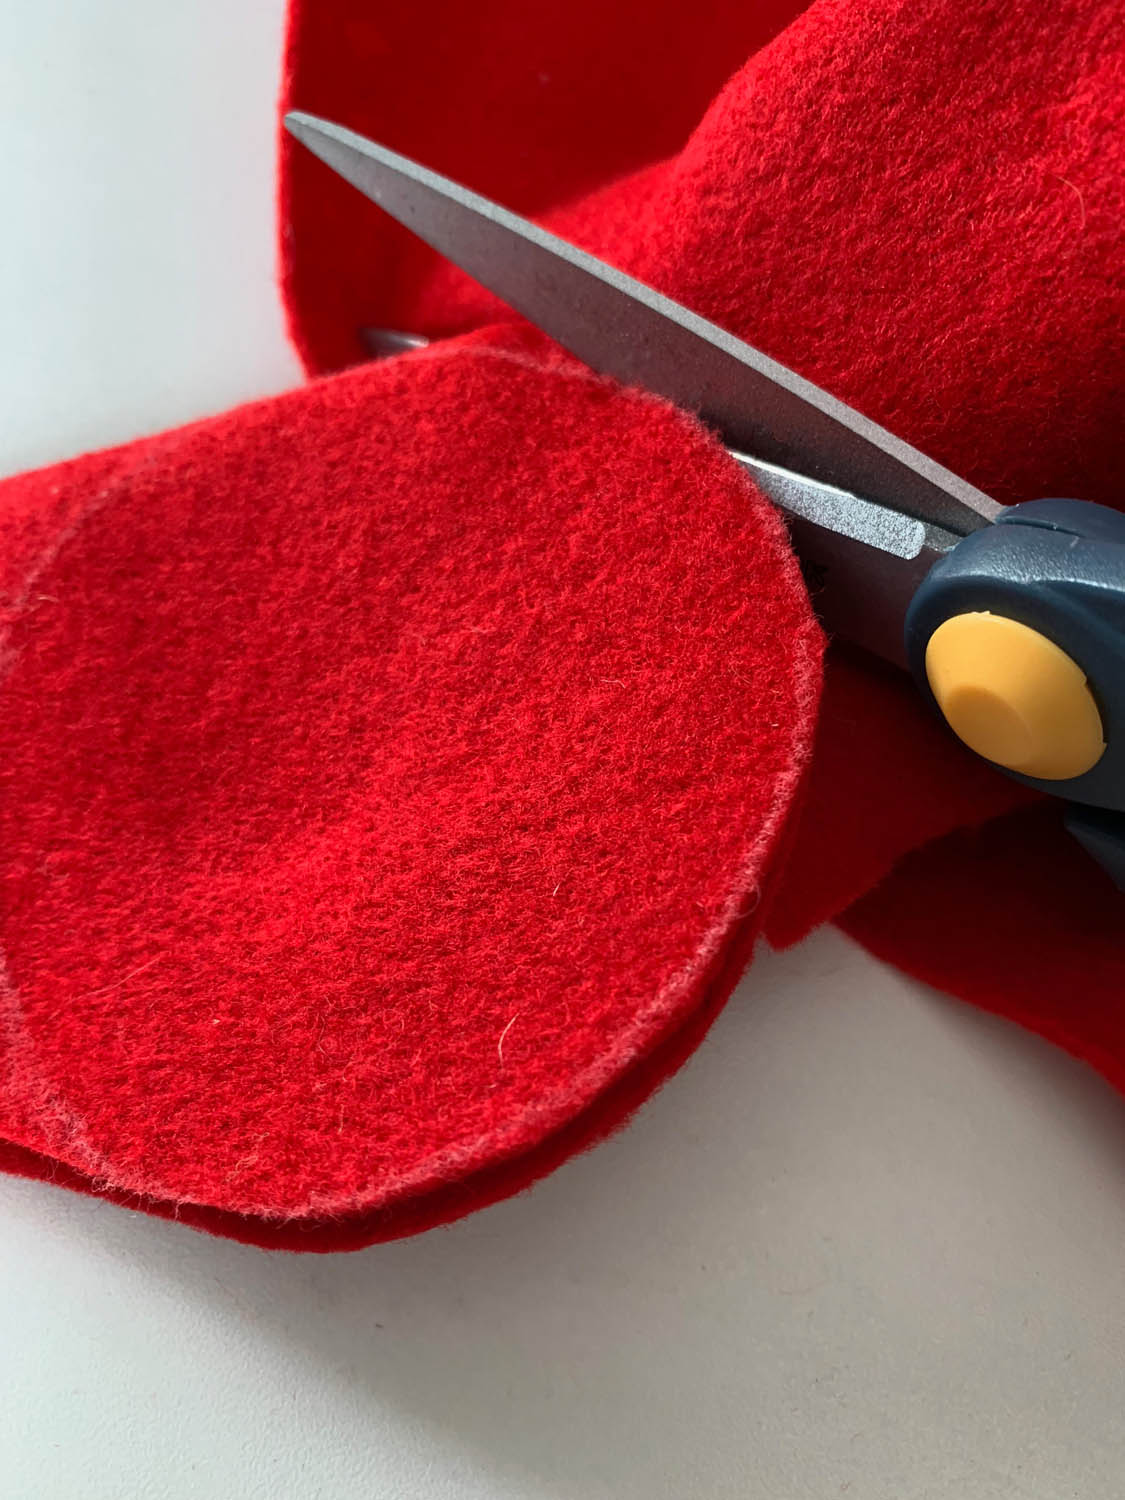 two layers of red felt being cut into circles with scissors